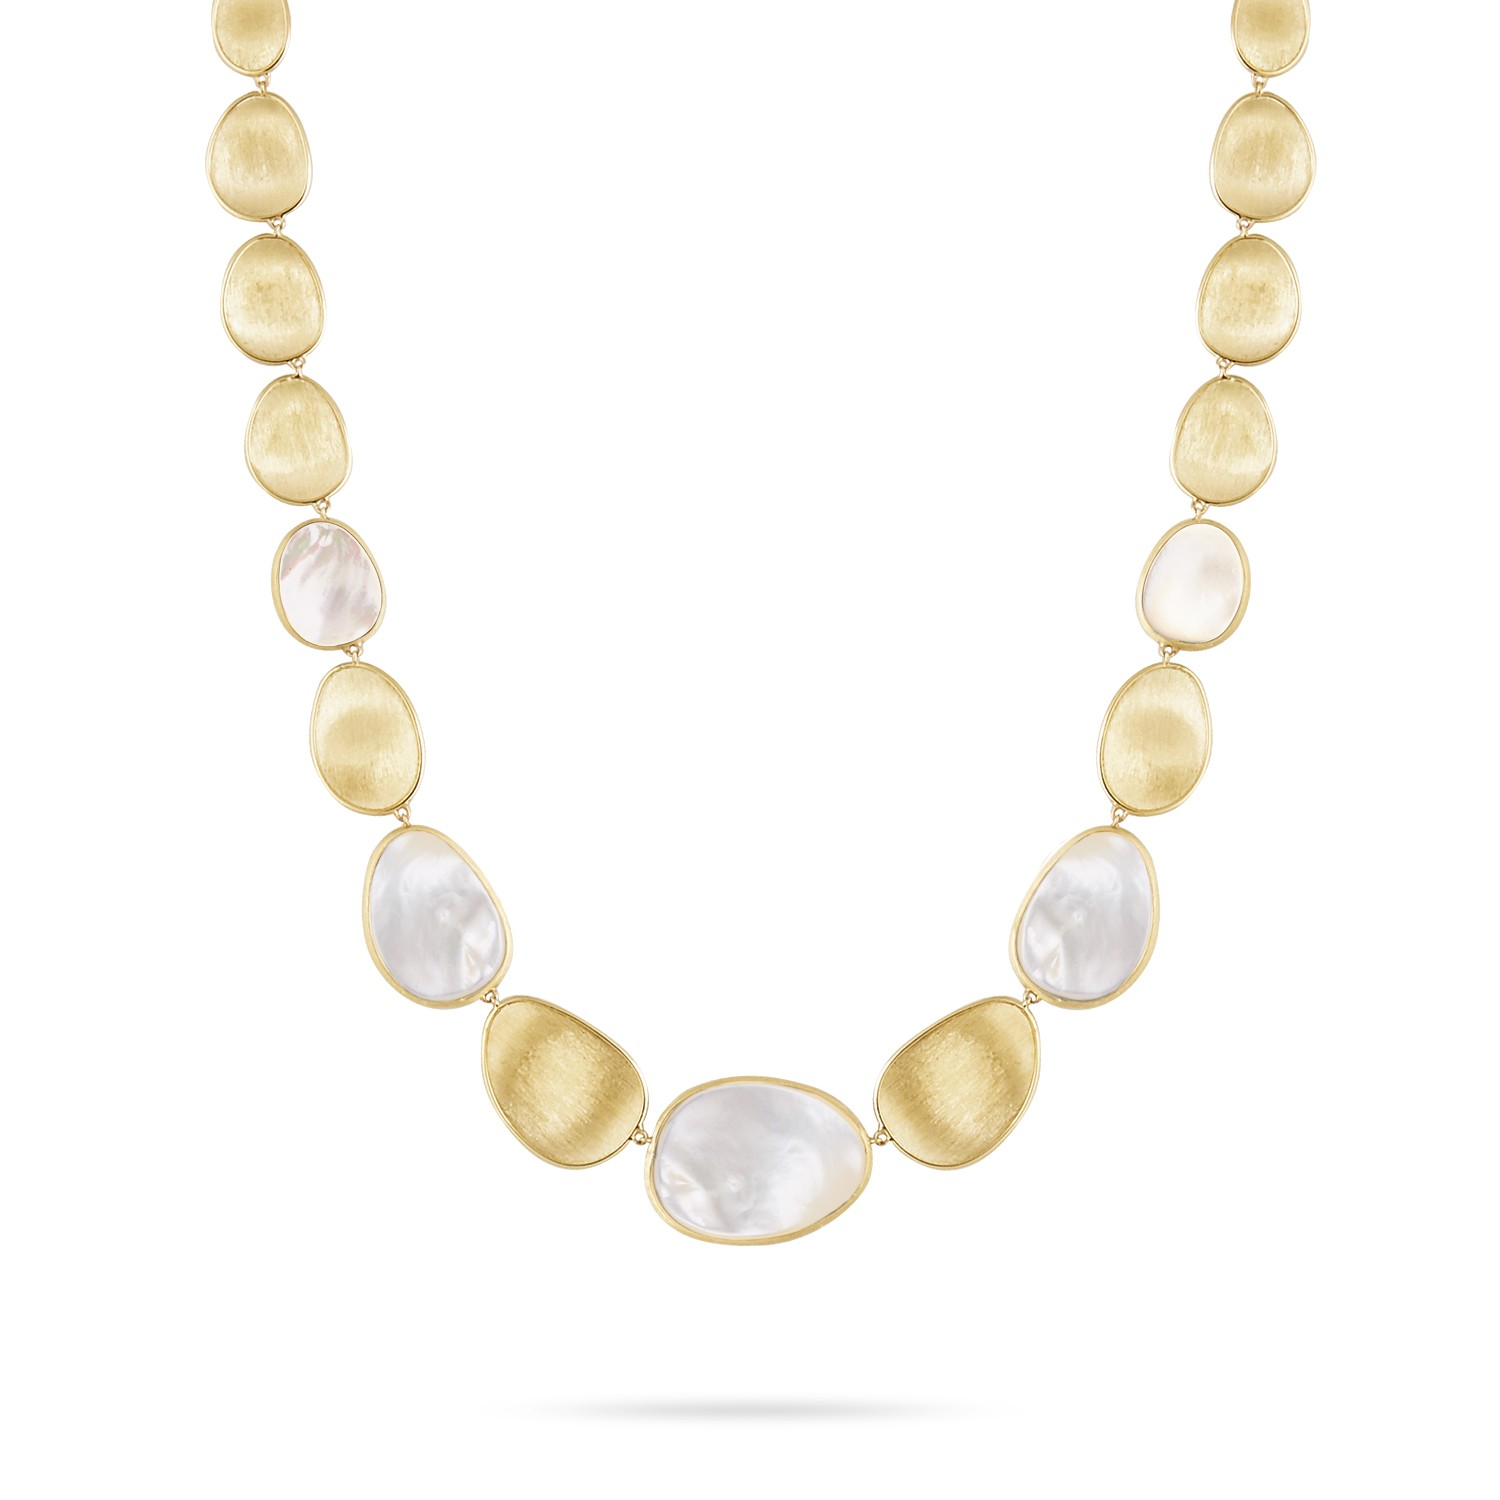 Kette Lunaria 18ct Gelbgold - Marco Bicego - CB1777-S-MPW